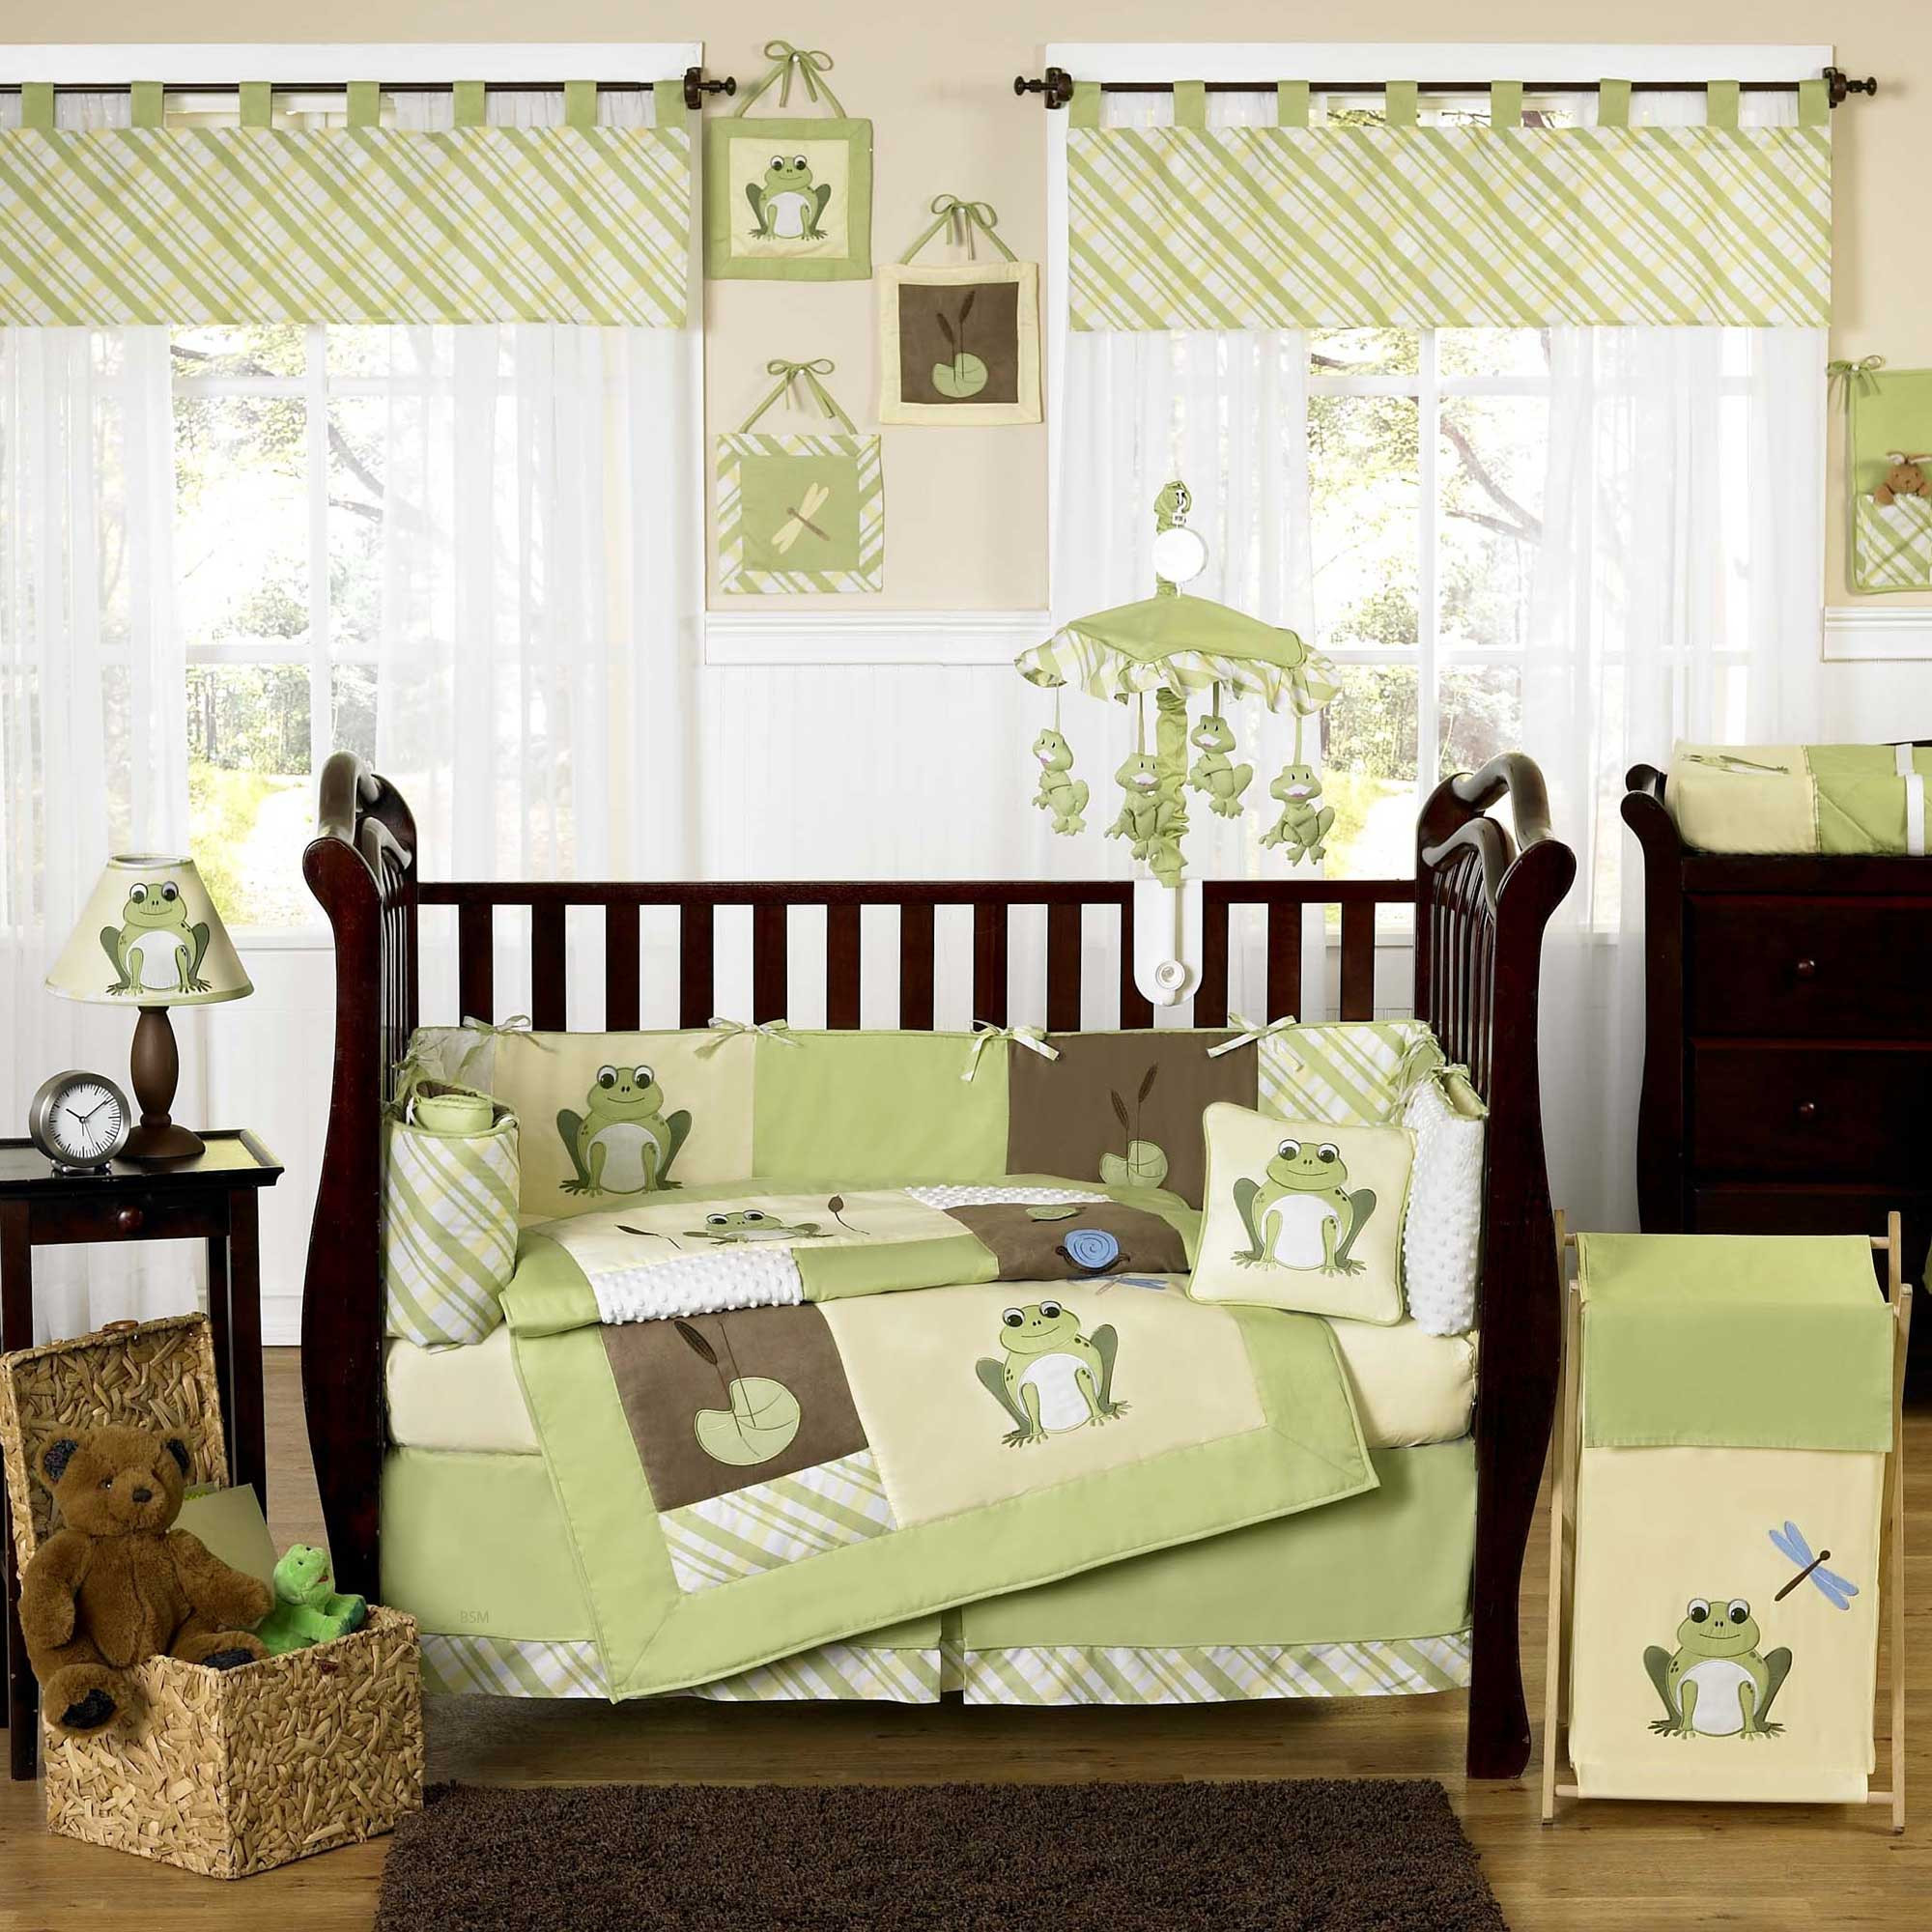 Decor Ideas For Baby Rooms  Themes For Baby Rooms Ideas – HomesFeed